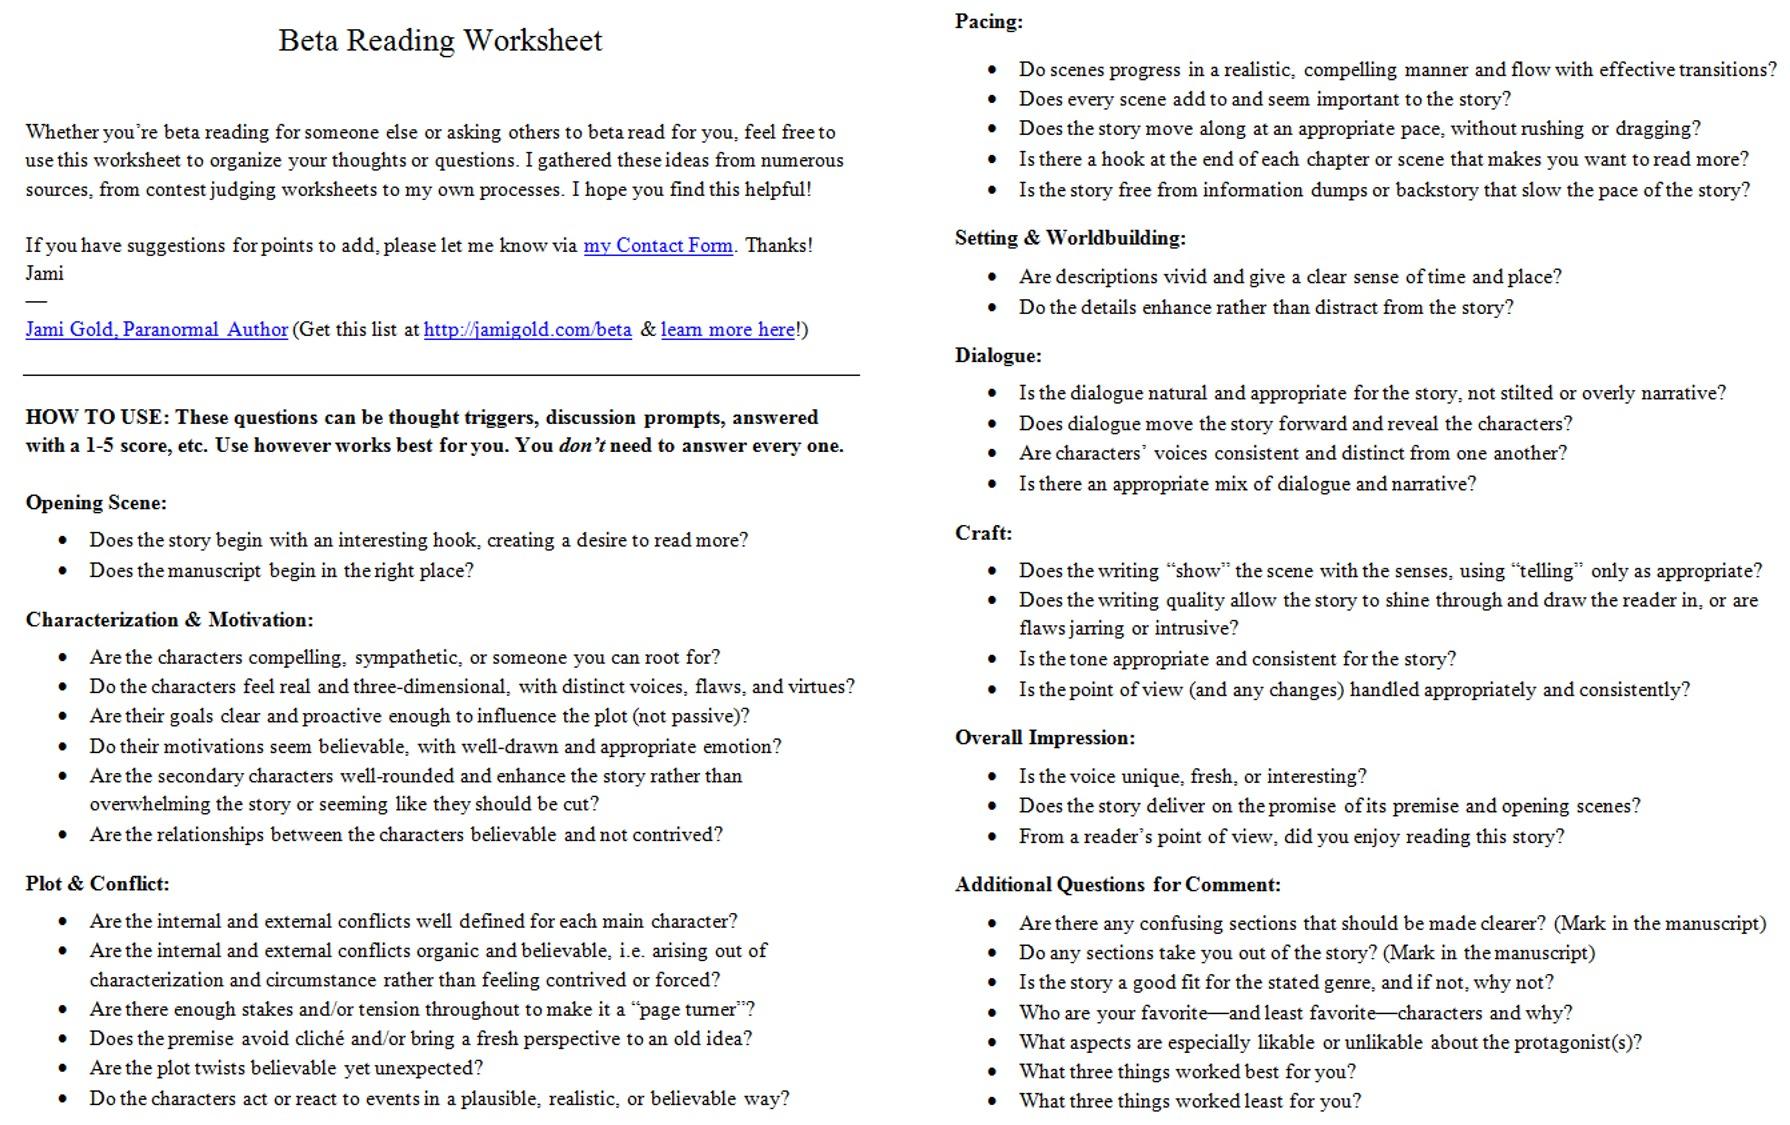 Weirdmailus  Pleasant Worksheets For Writers  Jami Gold Paranormal Author With Goodlooking Screen Shot Of The Twopage Beta Reading Worksheet With Agreeable Worksheets For Prep Also Visual Perception Worksheet In Addition Scatter Plot Worksheets Th Grade And Onomatopoeia Worksheets Ks As Well As Nouns Worksheet For Grade  Additionally Worksheets On Recycling From Jamigoldcom With Weirdmailus  Goodlooking Worksheets For Writers  Jami Gold Paranormal Author With Agreeable Screen Shot Of The Twopage Beta Reading Worksheet And Pleasant Worksheets For Prep Also Visual Perception Worksheet In Addition Scatter Plot Worksheets Th Grade From Jamigoldcom